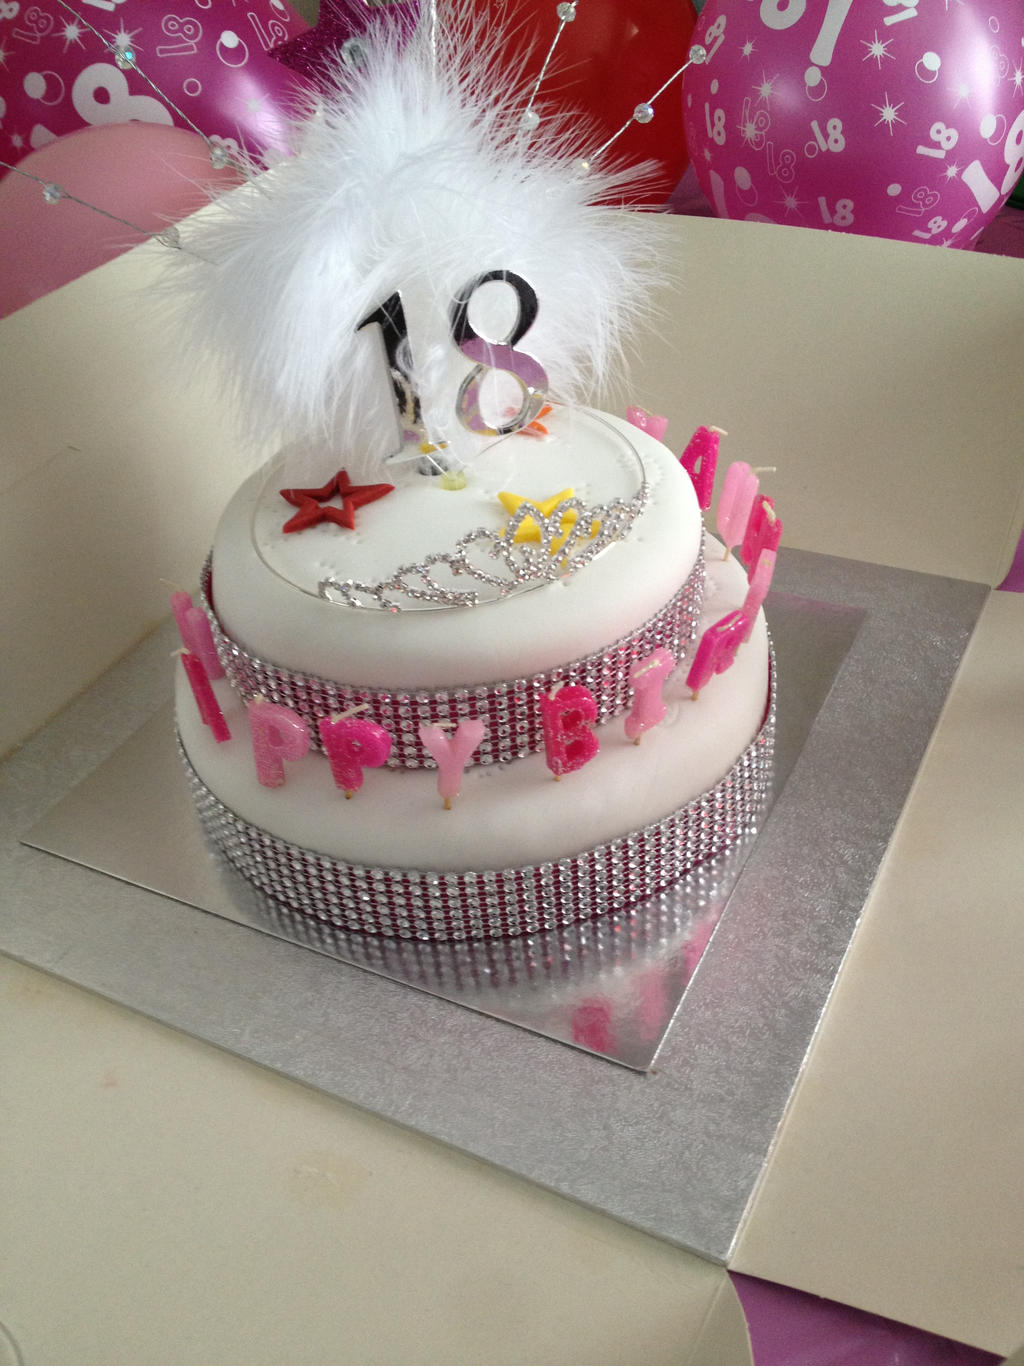 18th birthday cakes order online